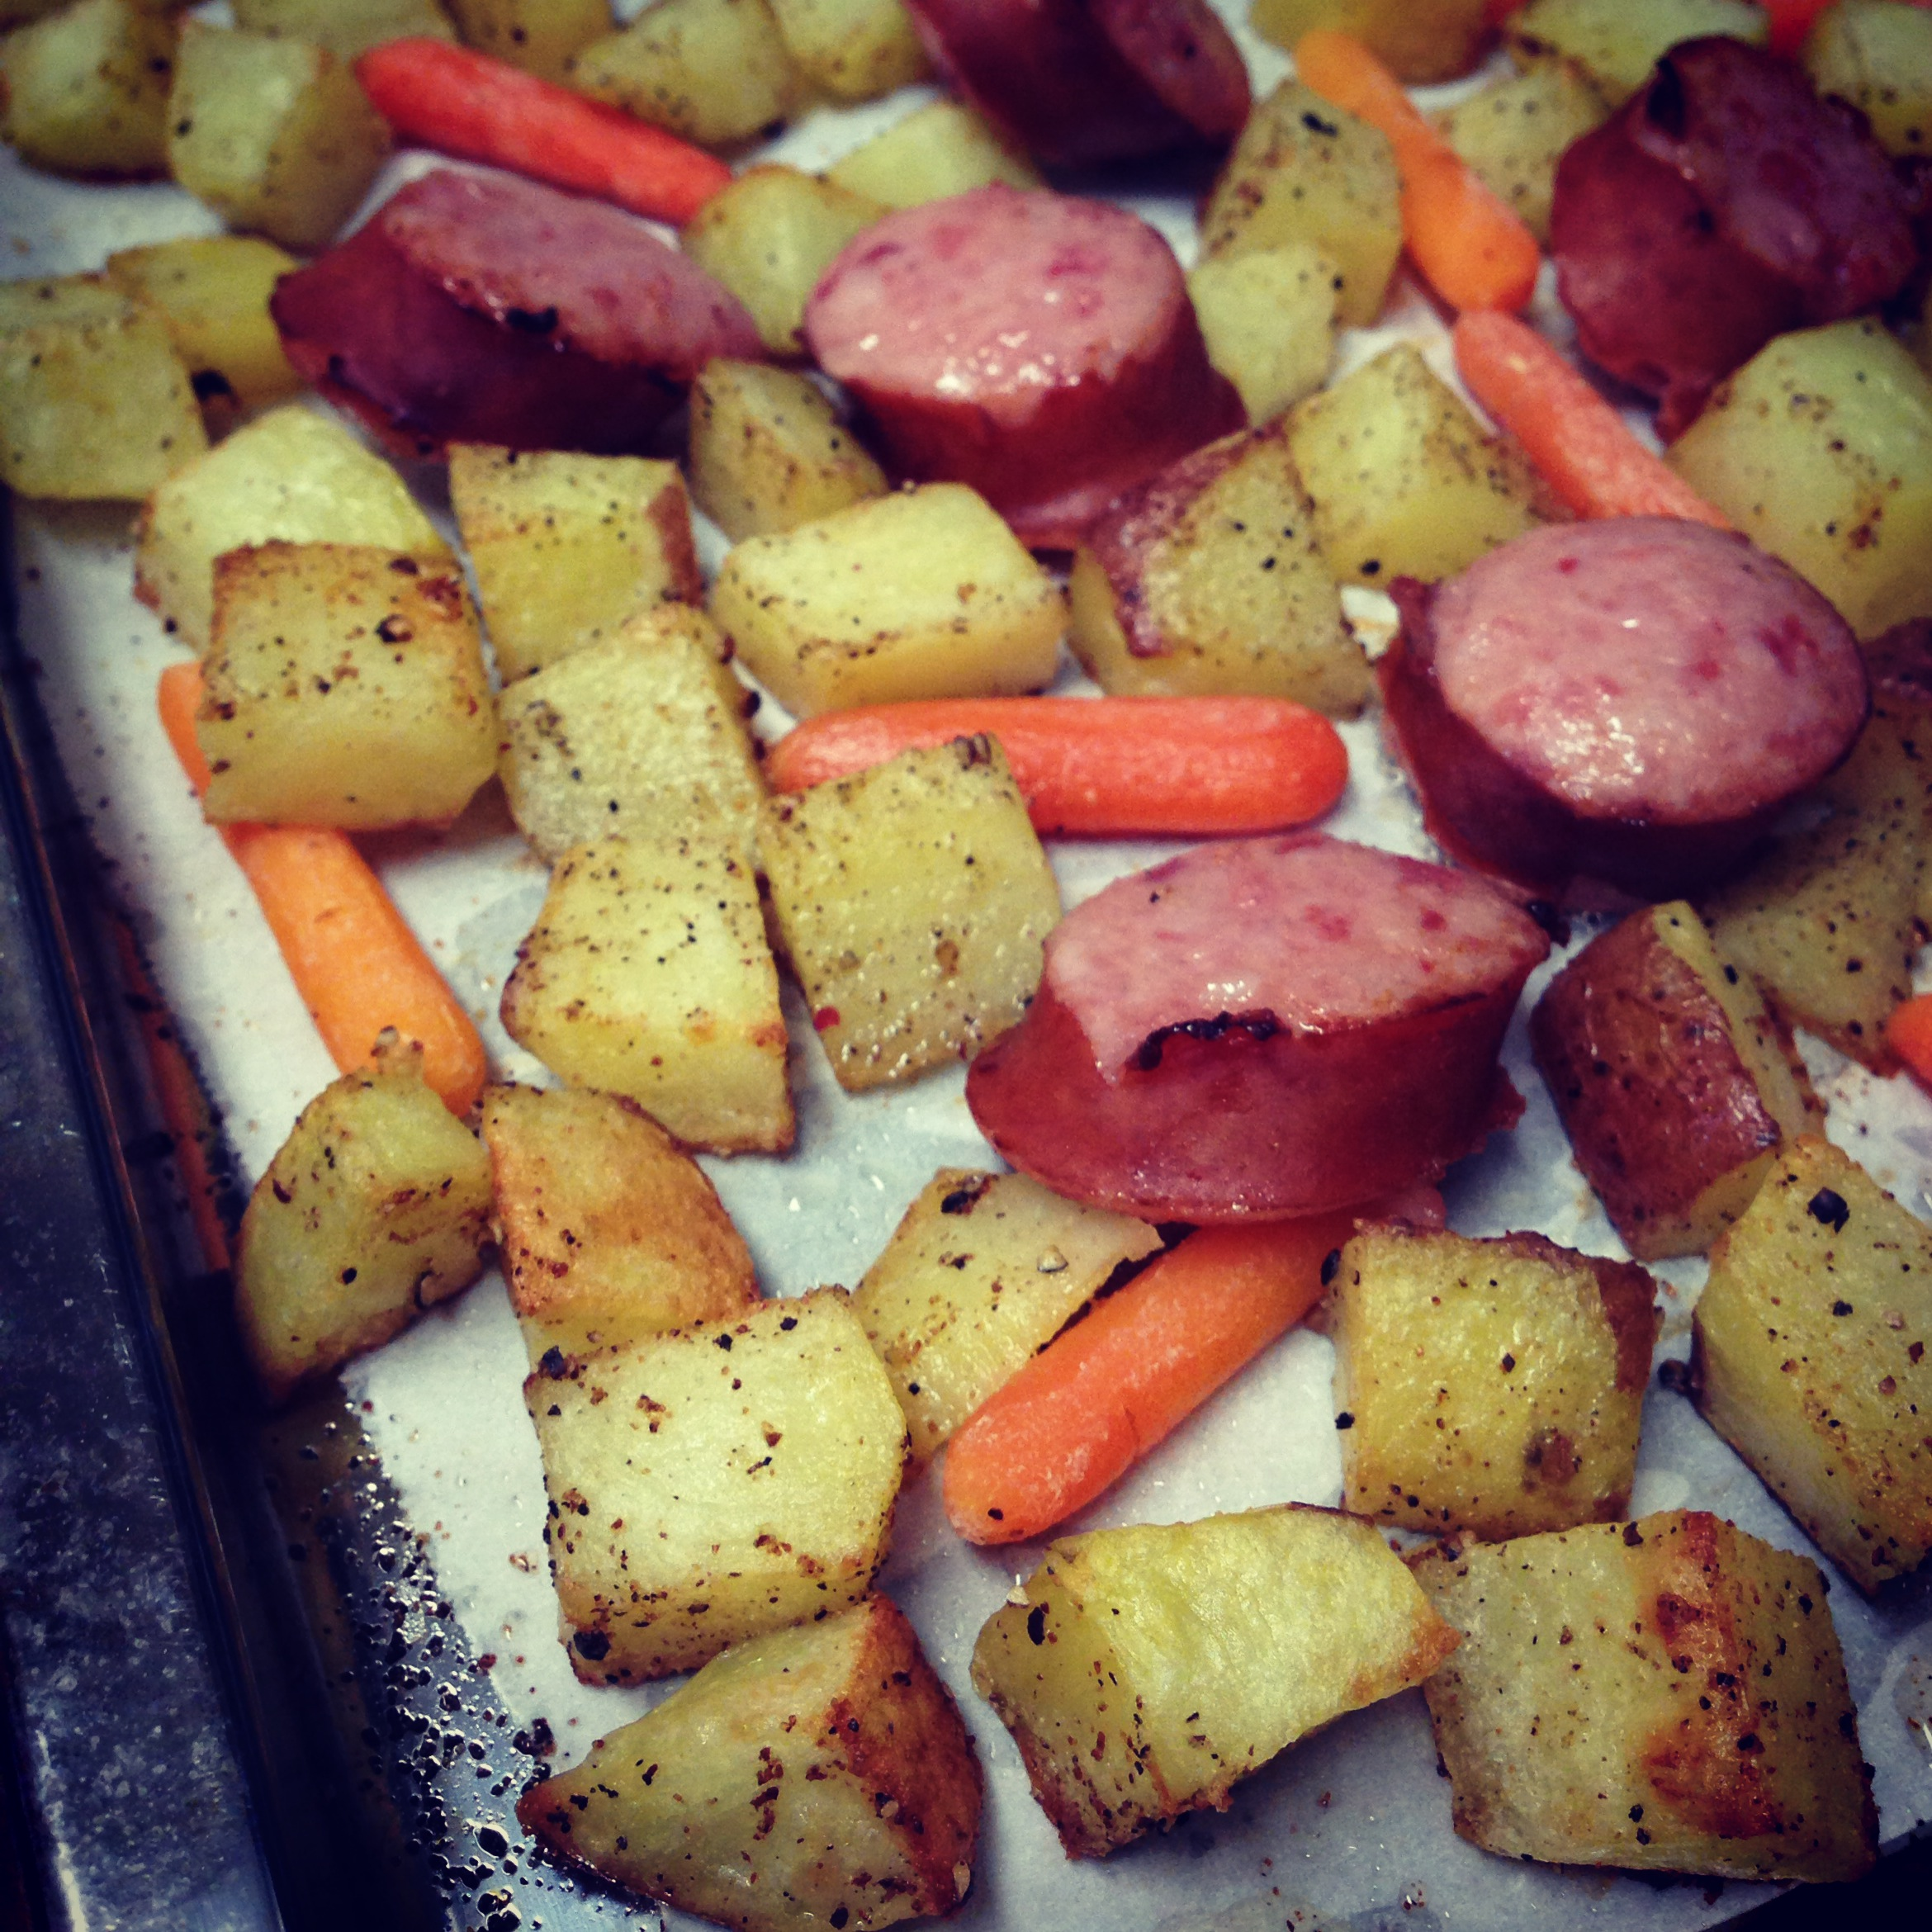 Teal Potatoes Cheese Smoked Sausage Smoked Sausage Crispy Potatoes Fried Potatoes Recipes Smoked Sausage Recipes nice food Smoked Sausage Recipes With Potatoes